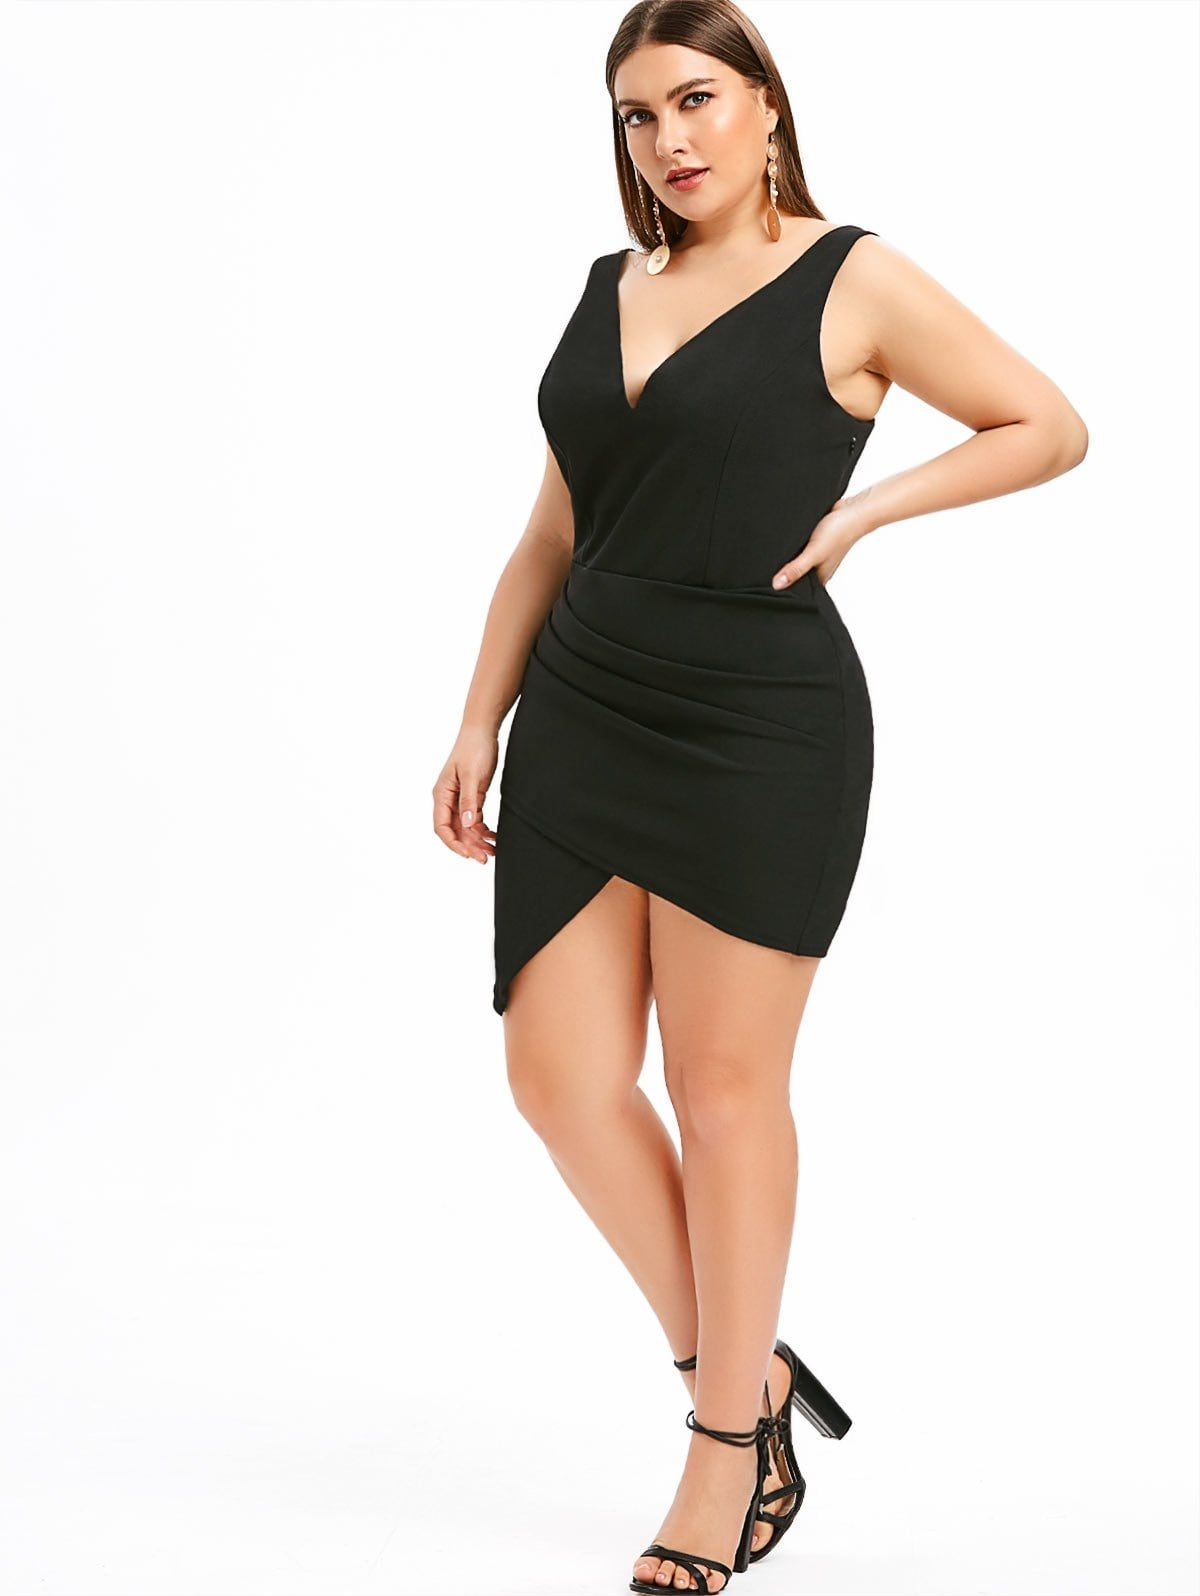 Plus Size Low Cut Ruched Bodycon Dress | Fit Fashion in 2019 ...